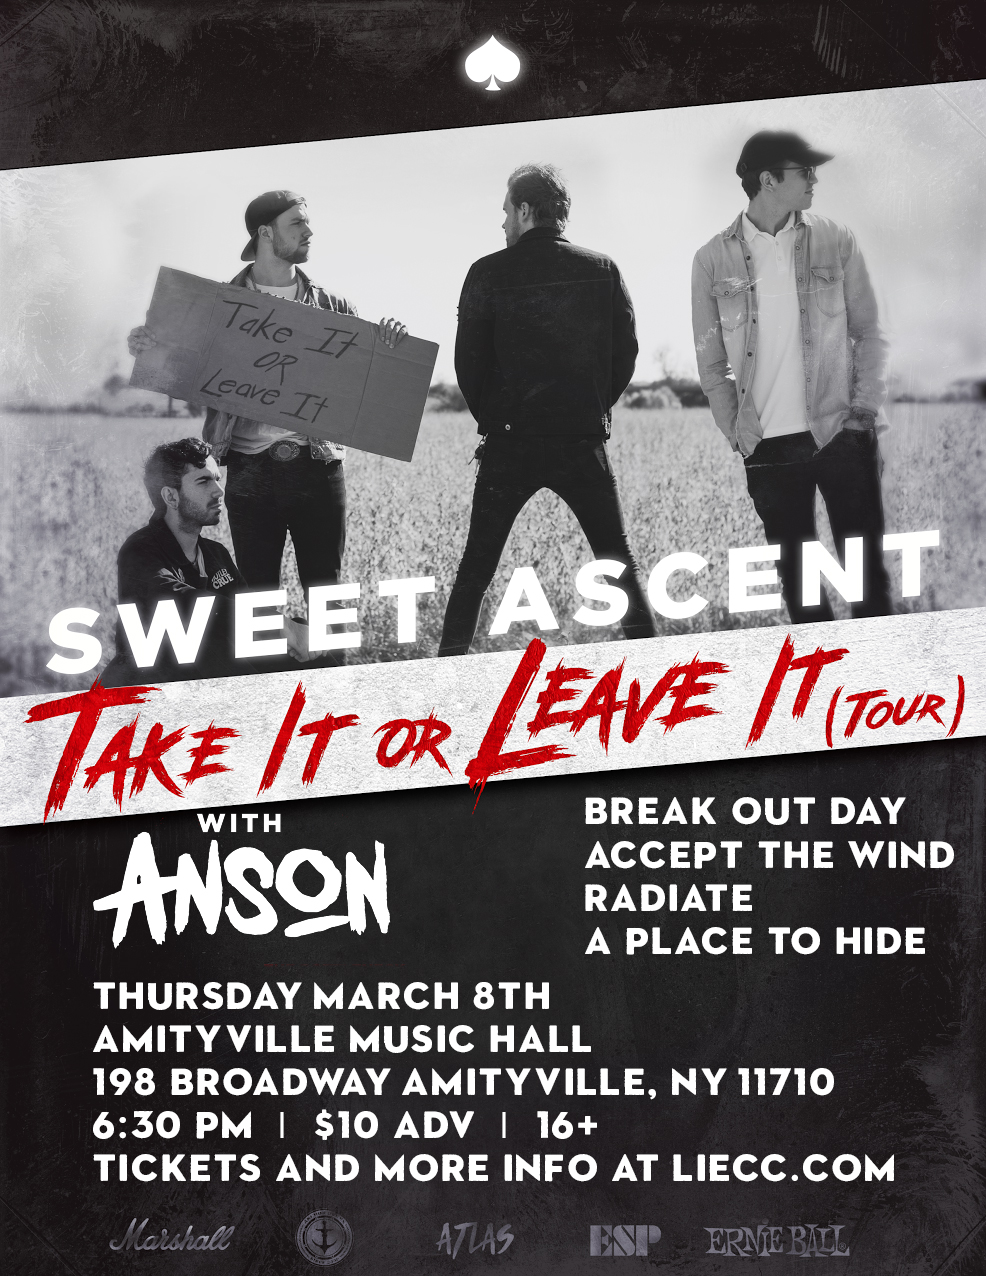 Sweet Ascent - Anson,Break Out Day,Accept the Wind,Radiate band, and A Place To Hide$10 ADV / $12 DOS16+ w/ ID